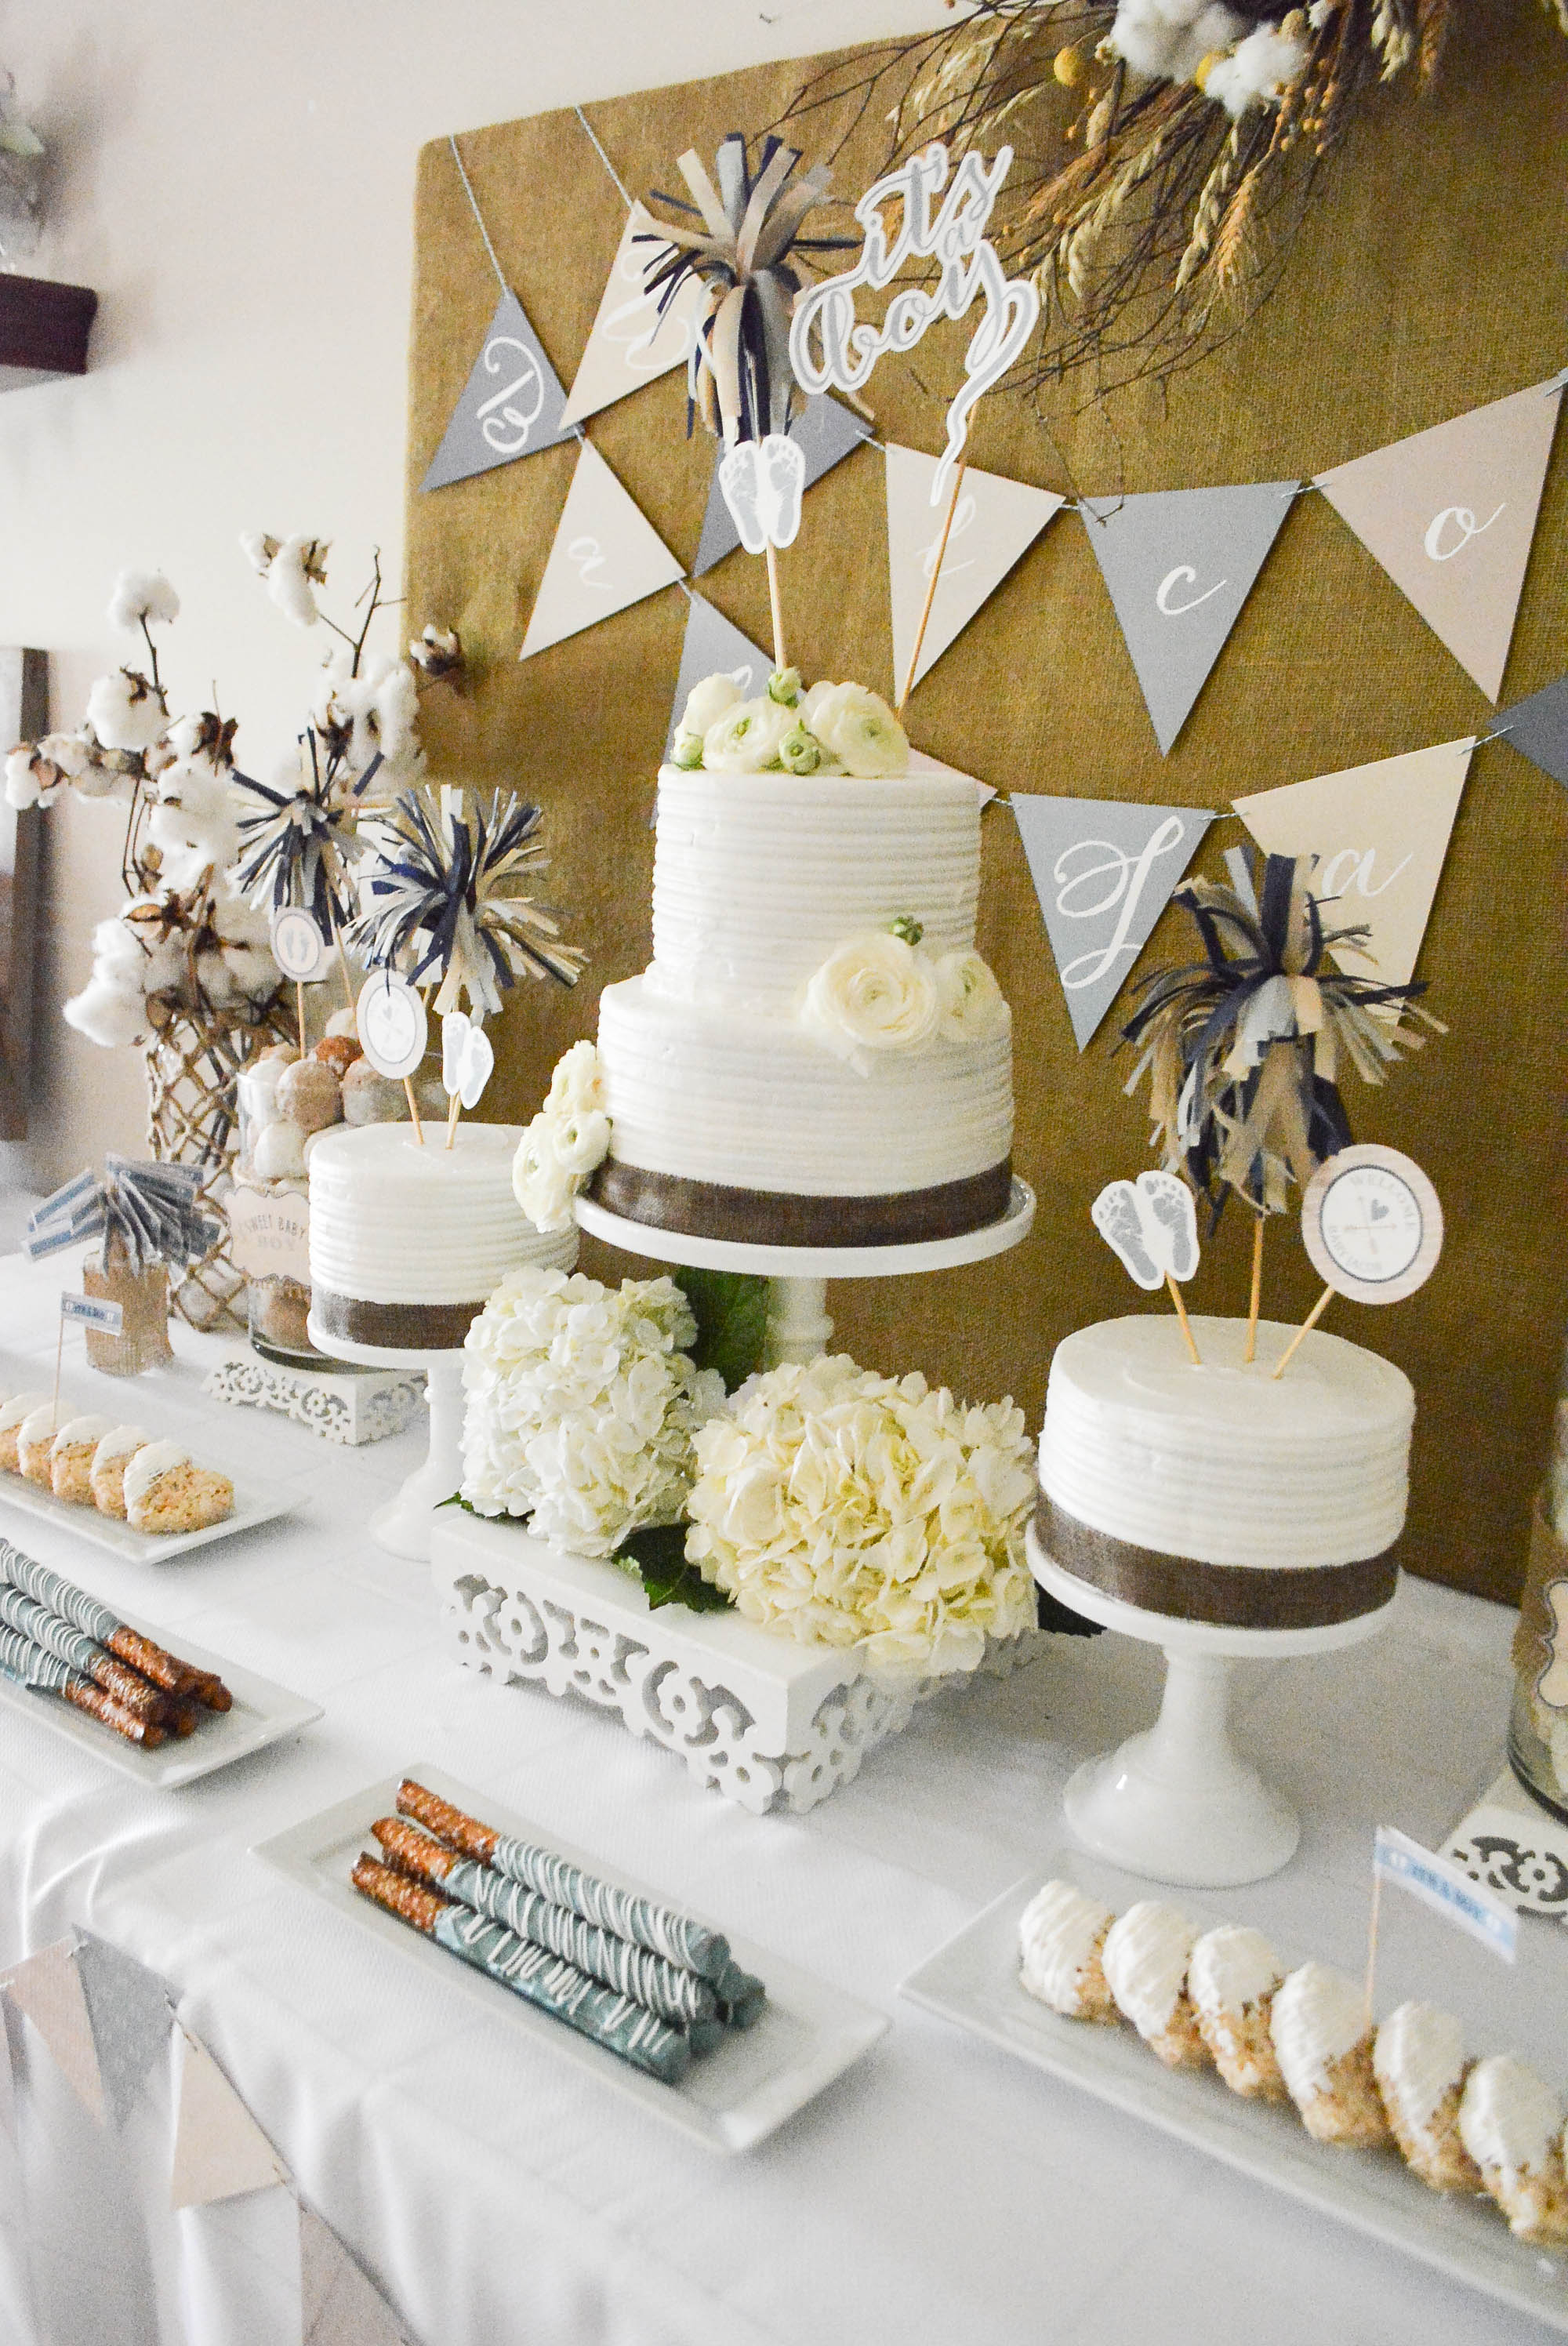 printable cake toppers and cake details wood signs and wood accents